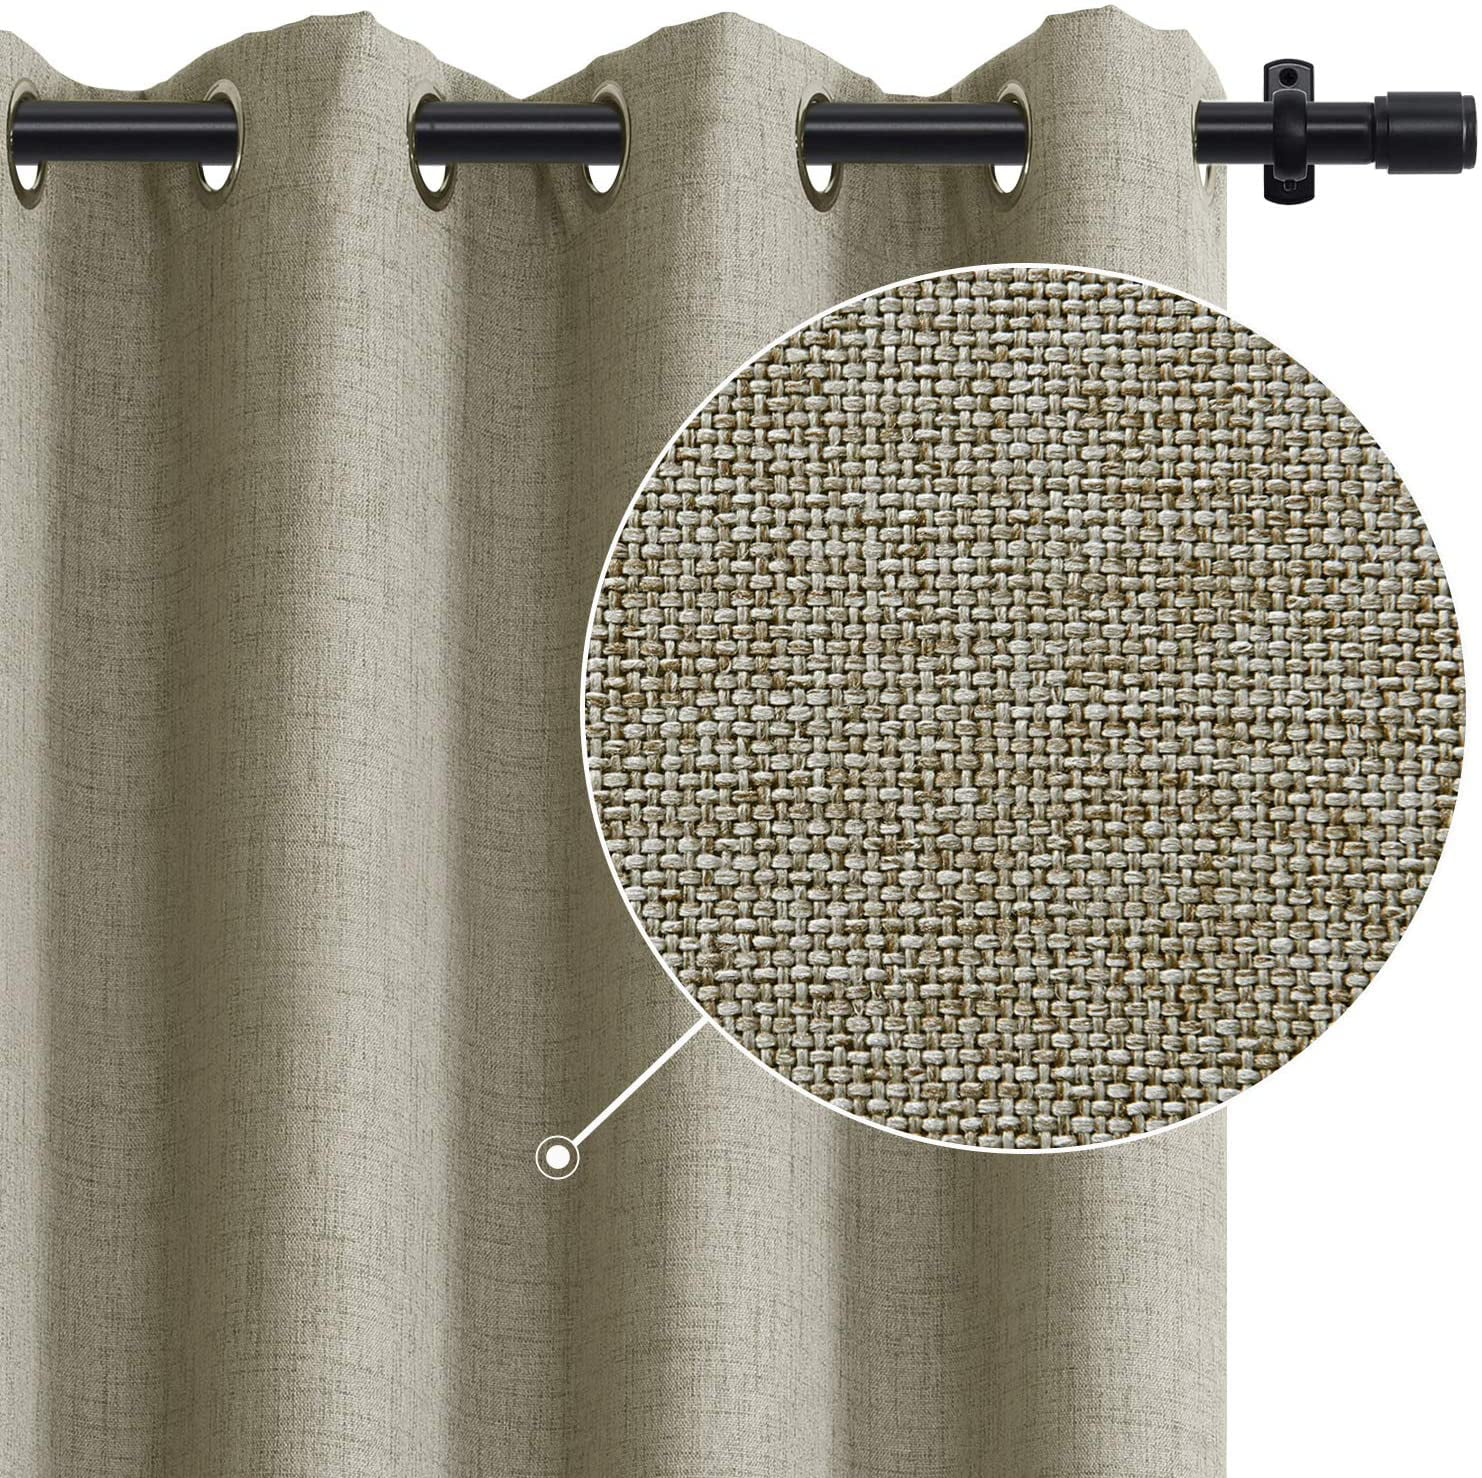 rose home fashion rhf function curtain wide thermal blackout patio door curtain panel sliding door insulated curtains extra wide curtains vertical